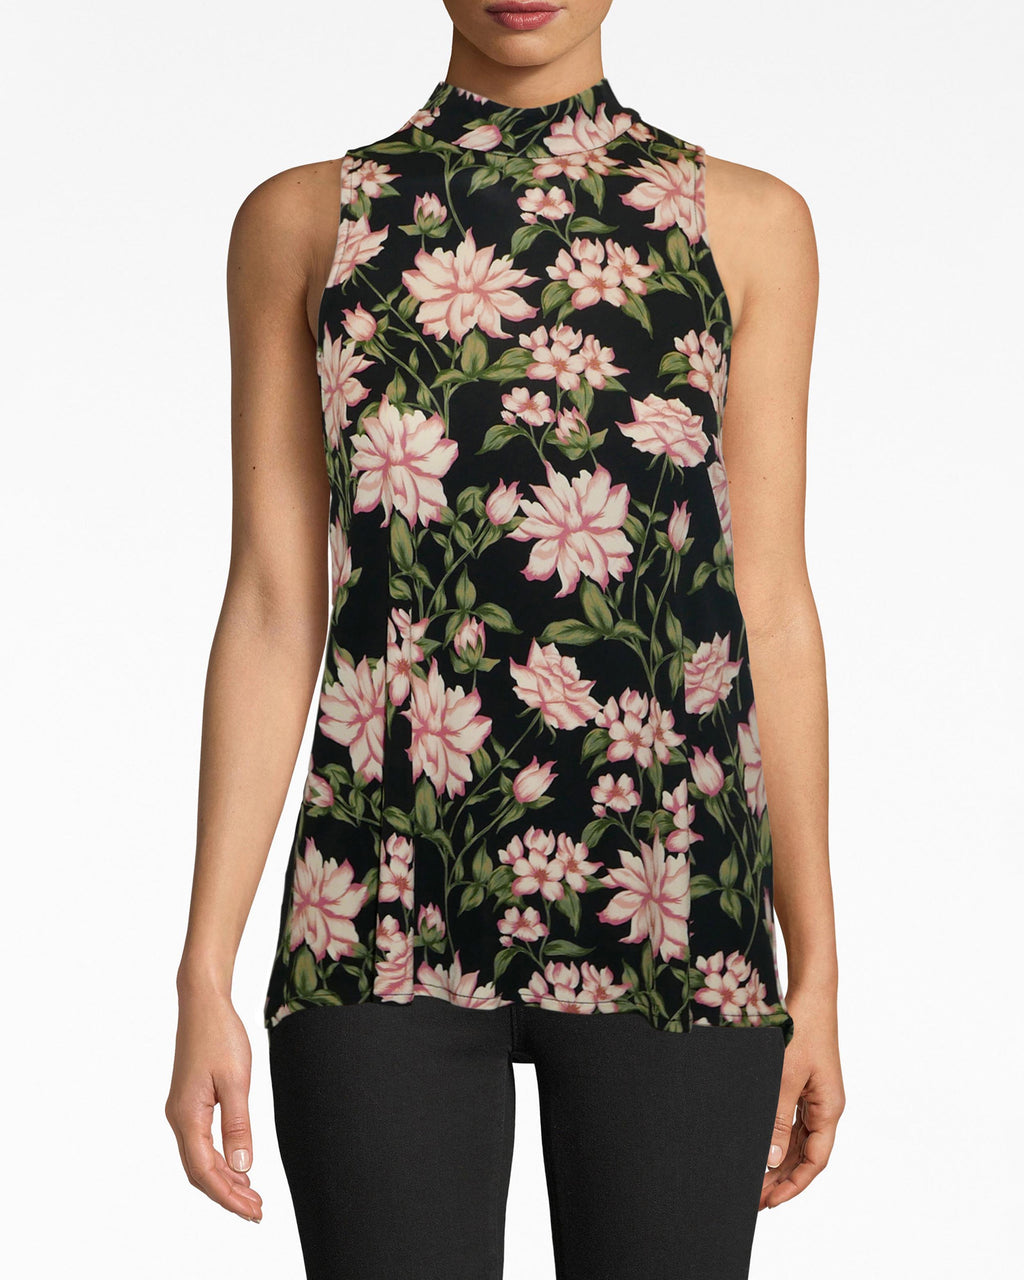 AS10215 - SPRING DREAM TURTLENECK TOP - tops - shirts - THIS SLEEVELESS TURTLENECK TOP IS DESIGNED IN OUR SPRING DREAM PRINT IN A STRETCHY MATTE JERSEY. PERFECT FOR PAIRING WITH A NIGHT OUT OR UNDER A BLAZER DEPENDING ON YOUR MOOD. TWO BUTTONS FOR CLOSURE.